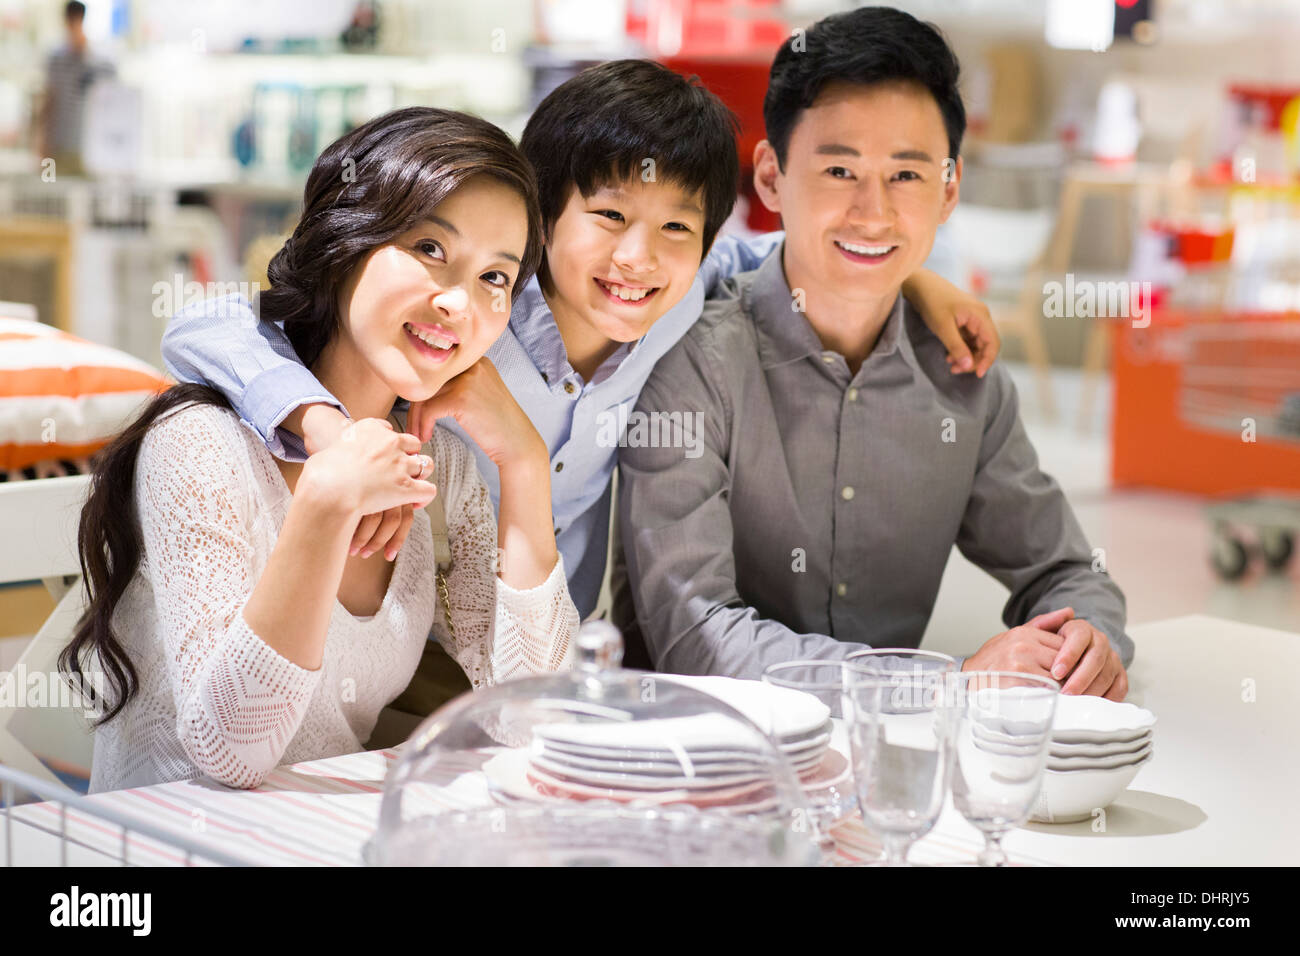 Cheerful family sitting side by side and smiling Stock Photo